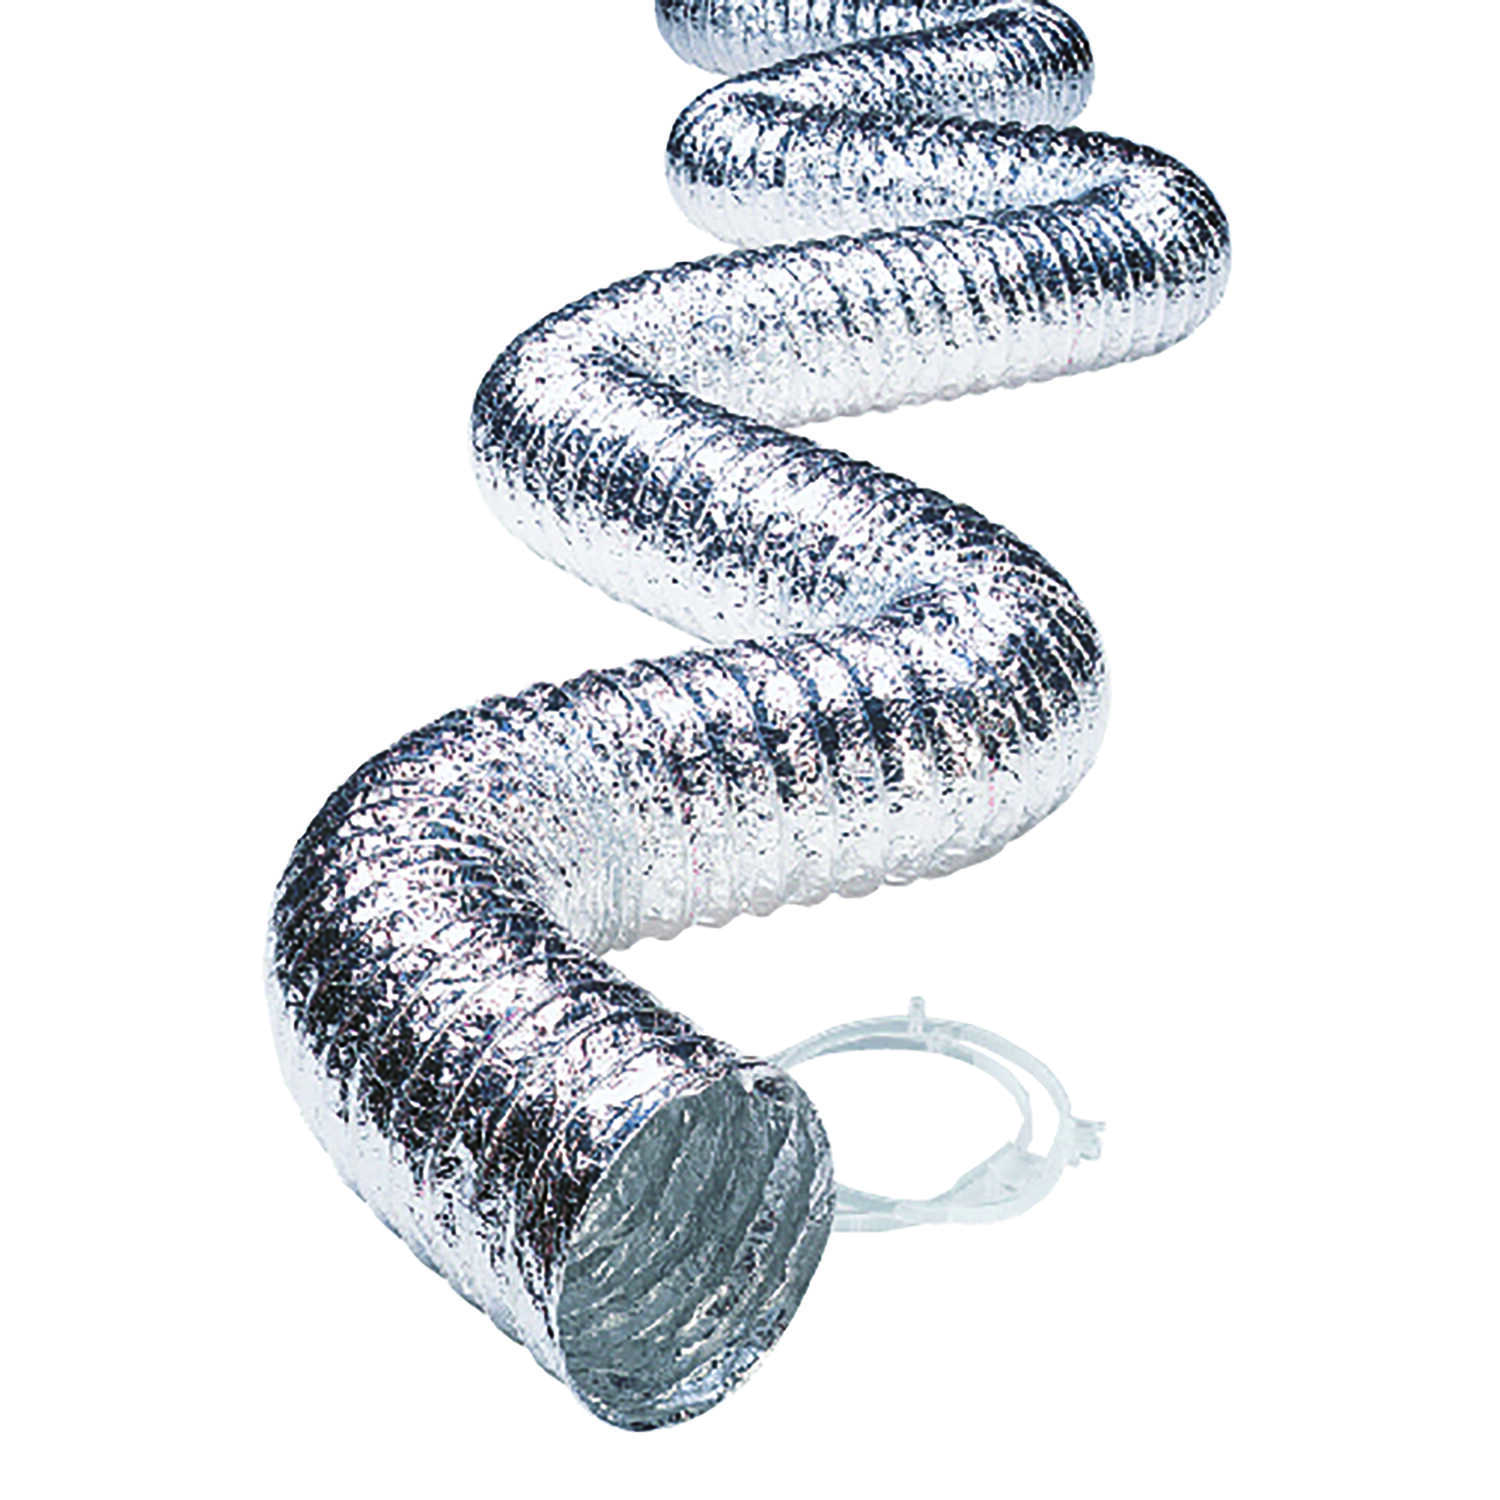 Ace  96 in. L x 4 in. Dia. Silver/White  Aluminum  Dryer Vent Duct